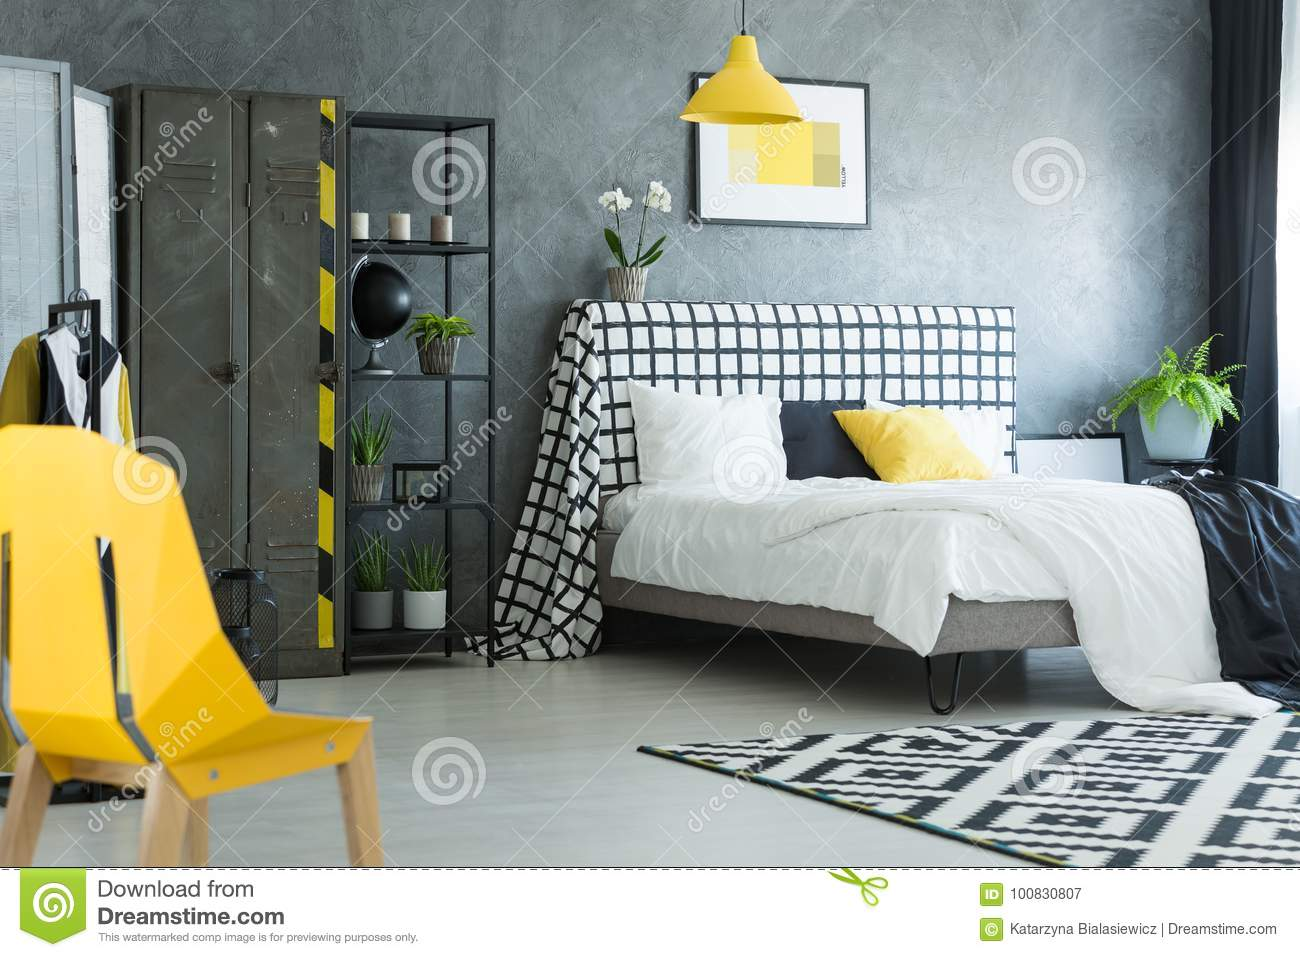 Astonishing Yellow Designer Chair In Bedroom Stock Image Image Of Onthecornerstone Fun Painted Chair Ideas Images Onthecornerstoneorg